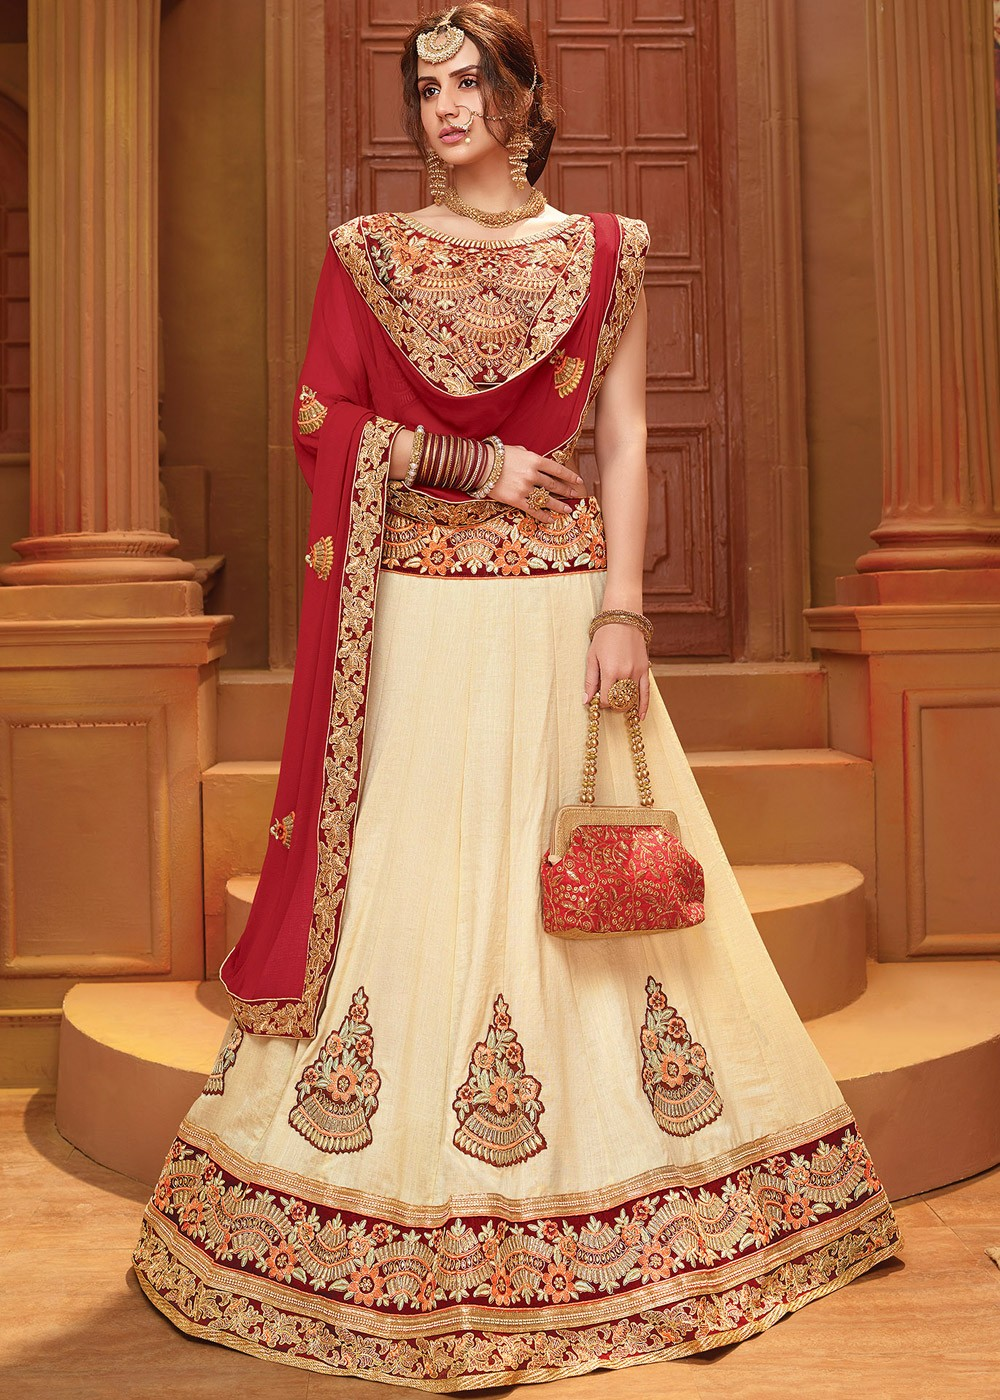 116ffa6d84 Tap to expand · Cream Art Silk Party Wear Lehenga Choli Online Shopping  With Dupatta in USA ...